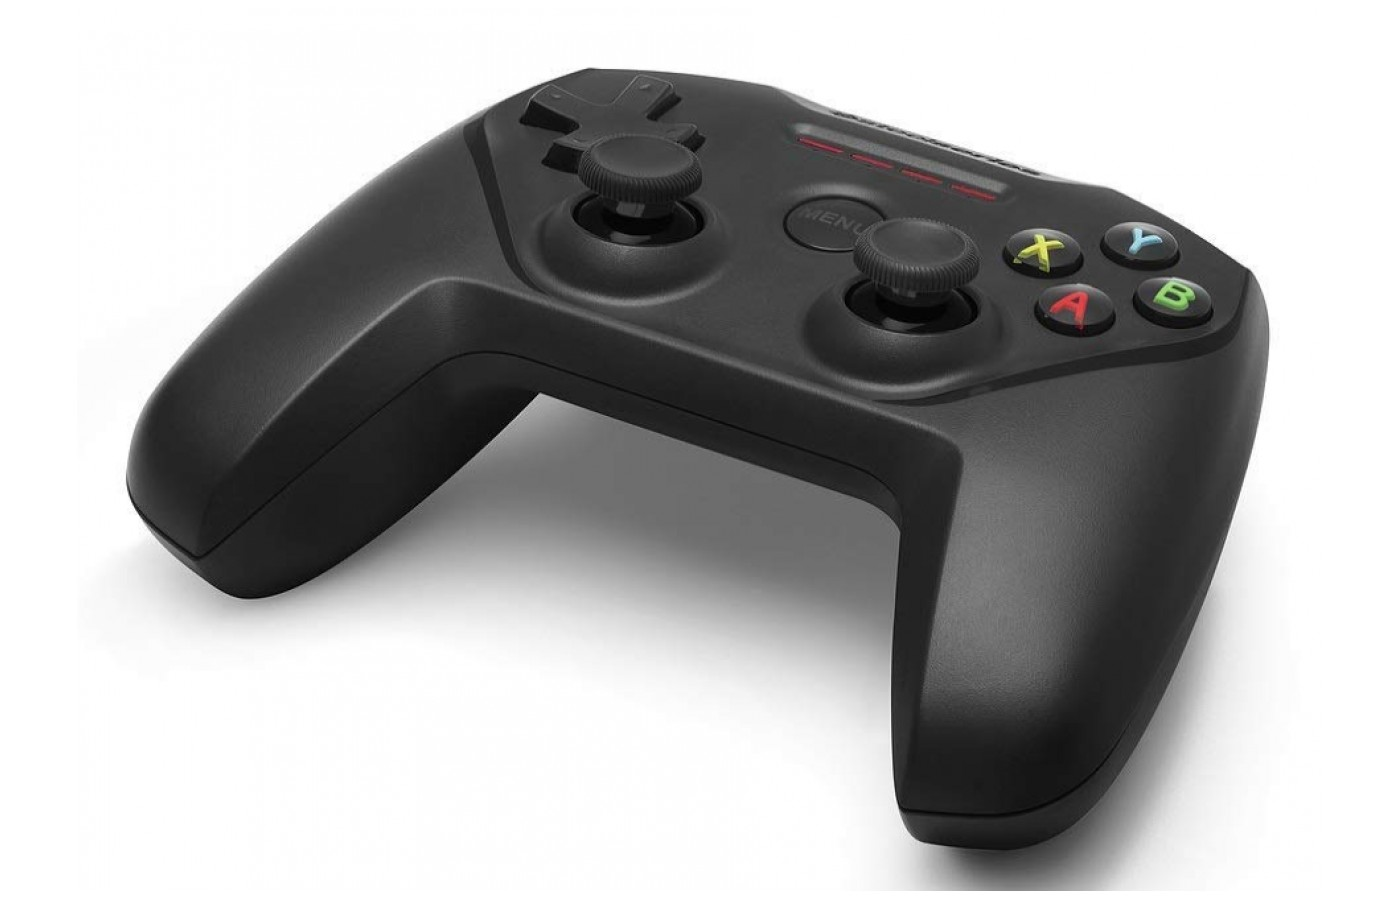 The Nimbus has a combination feel to it, something of a blend of Xbox and Nintendo controllers.